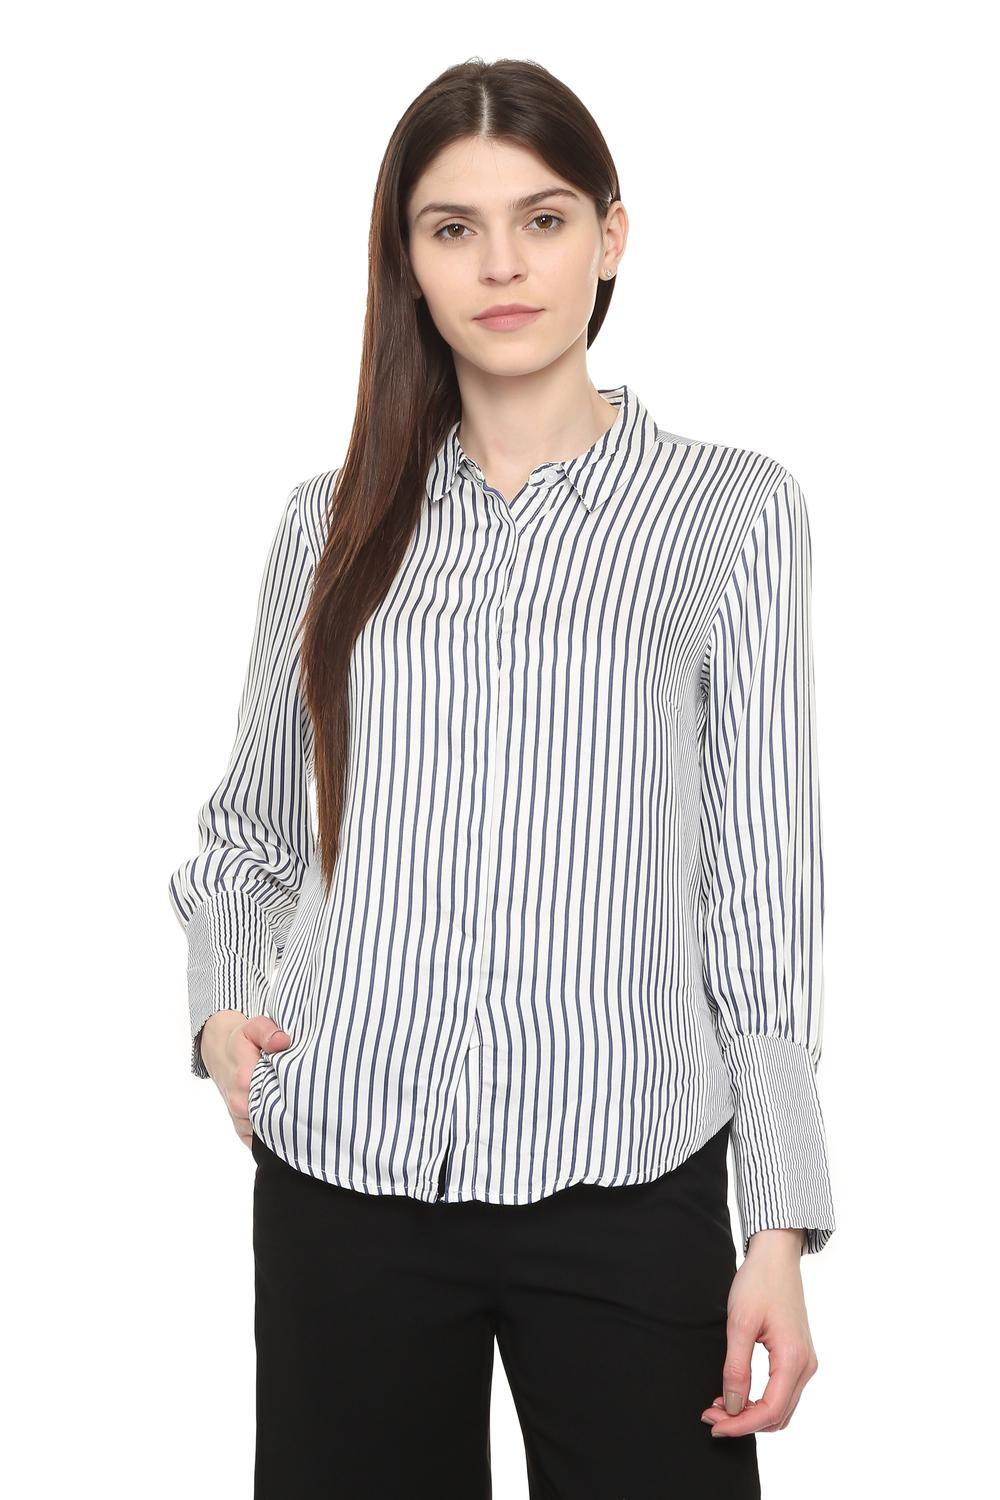 14c0240d37 Solly Shirts & Blouses, Allen Solly White Shirt for Women at Allensolly.com